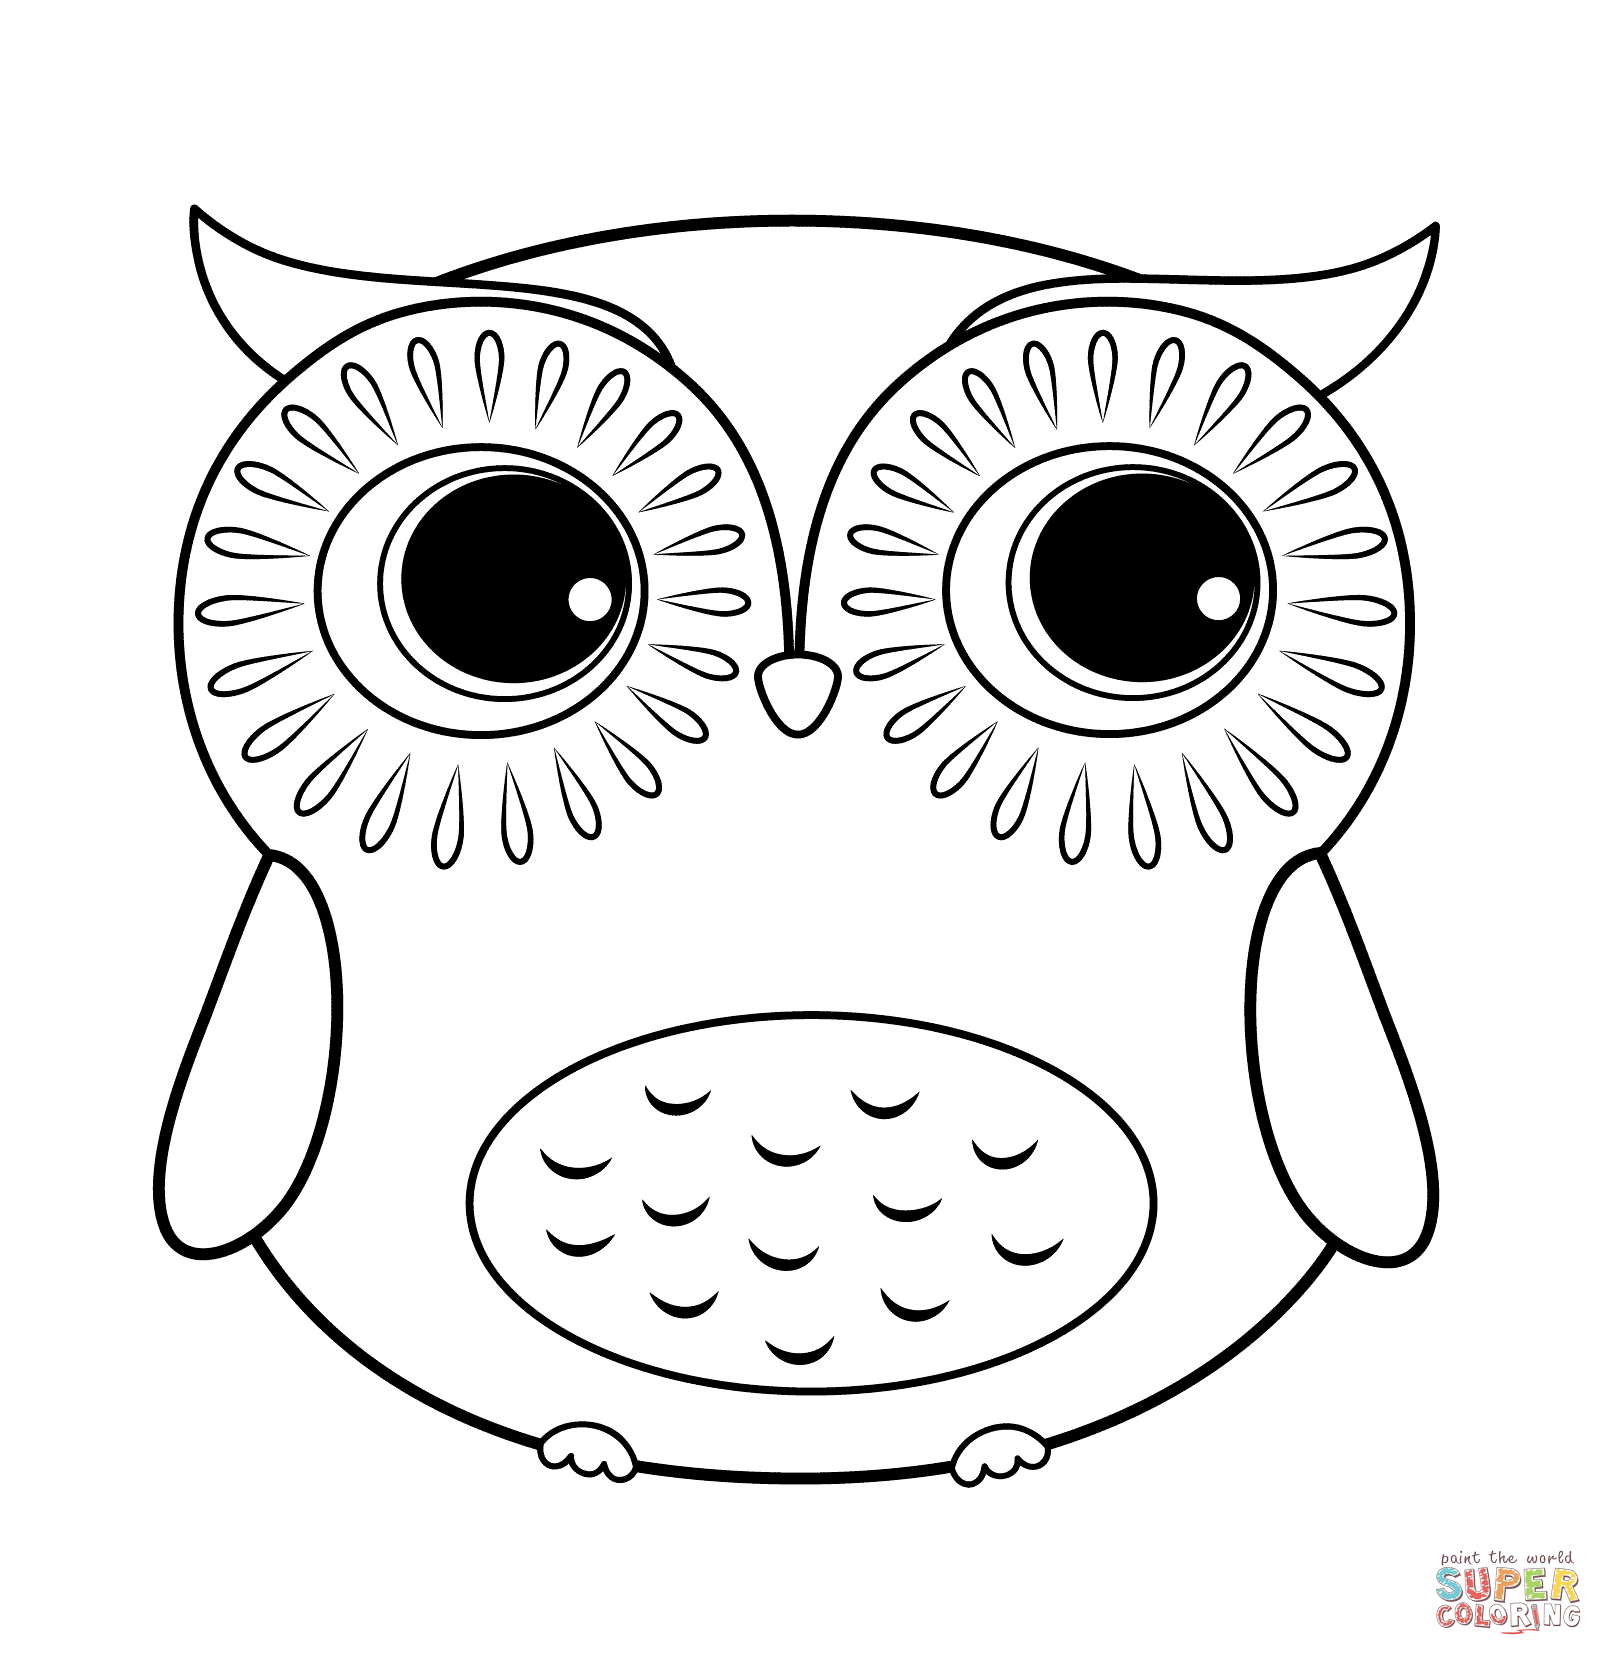 Pin By Alisa Johnson On Owls For Olalla Owl Coloring Pages Cartoon Coloring Pages Cute Easy Animal Drawings